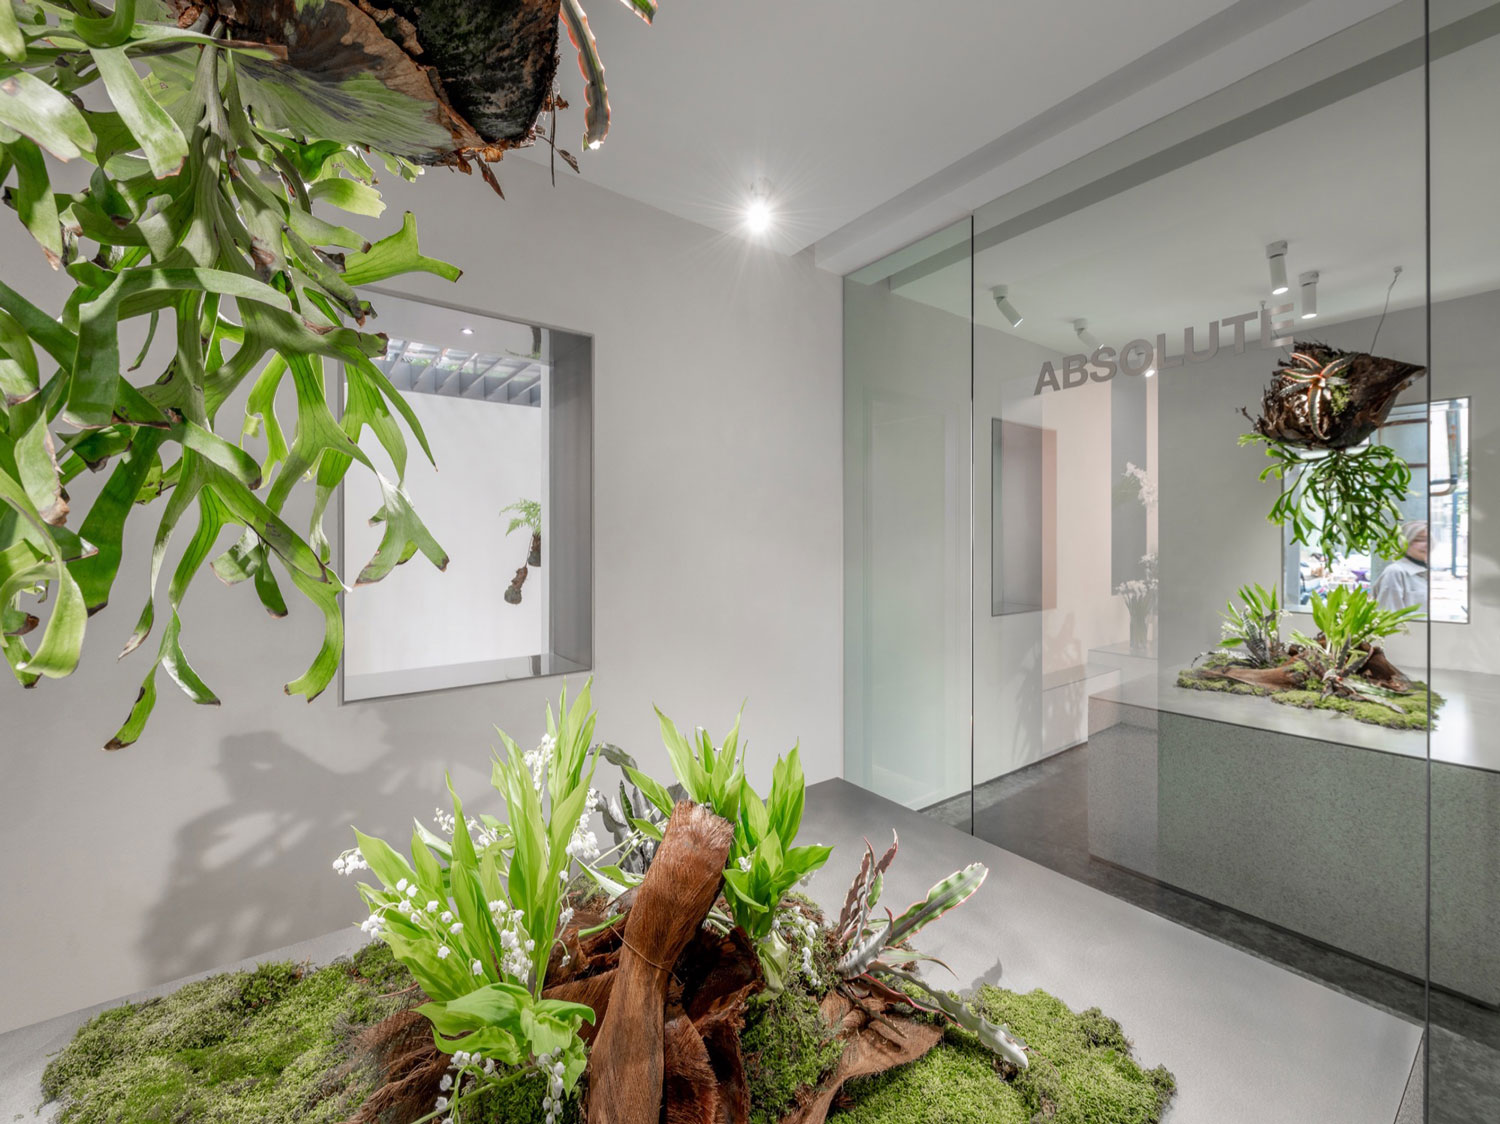 Shanghai's Absolute Flowers concept store a white-cube gallery for plants